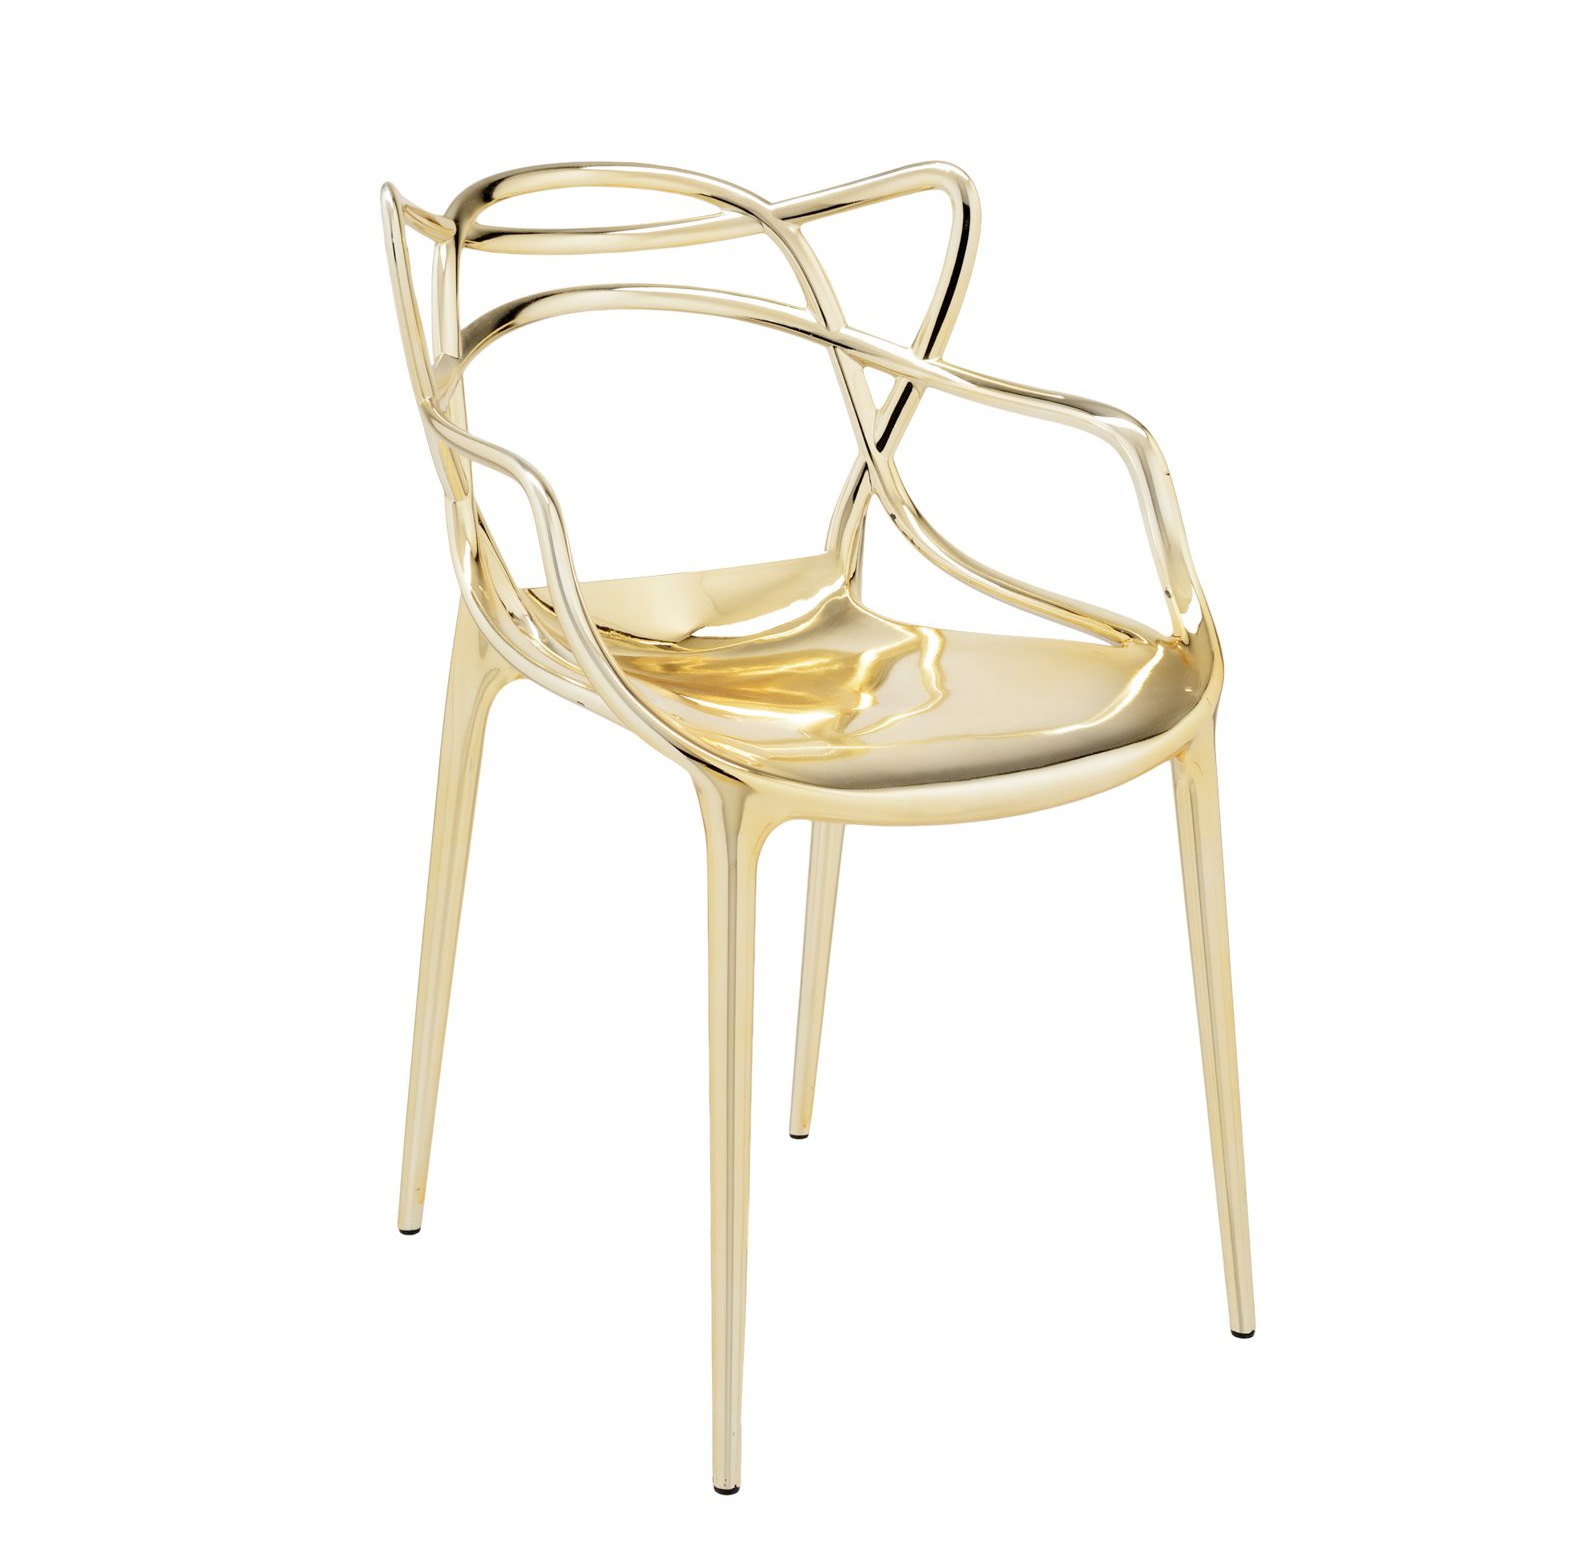 Designwebstore outlet masters metallic gold for Outlet cassina meda